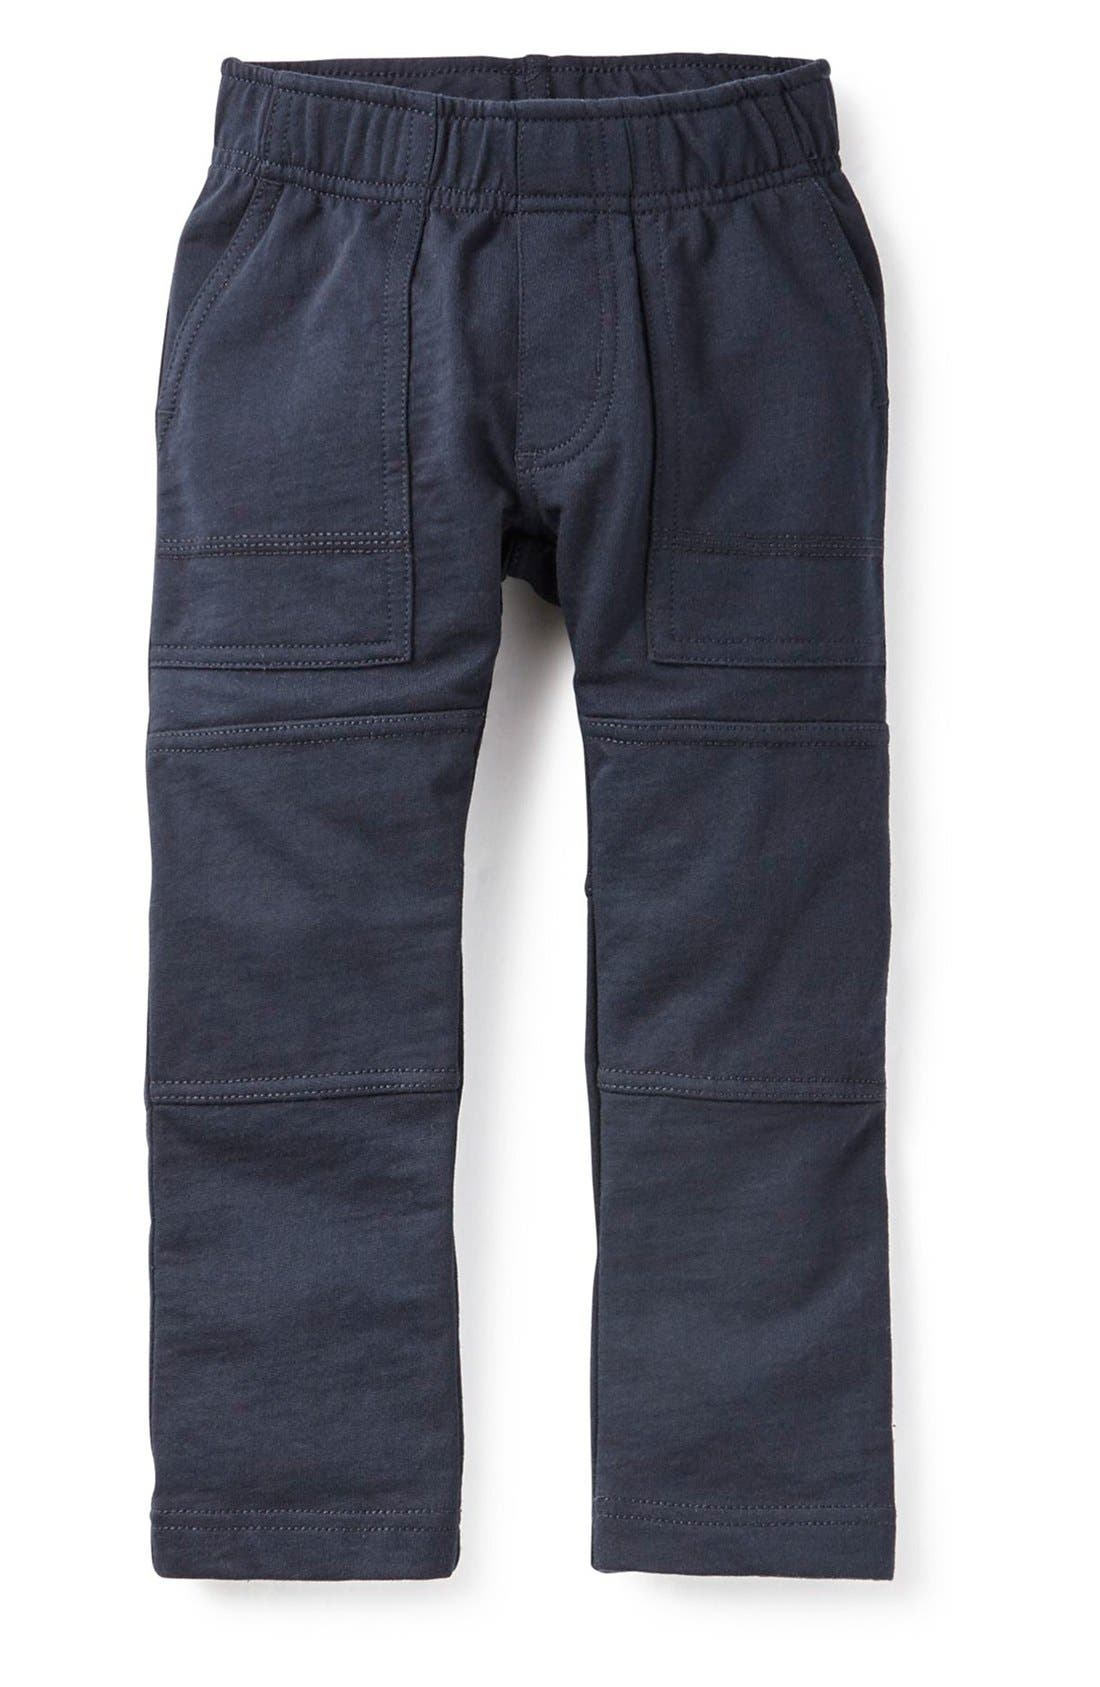 French Terry Pants,                             Main thumbnail 1, color,                             412